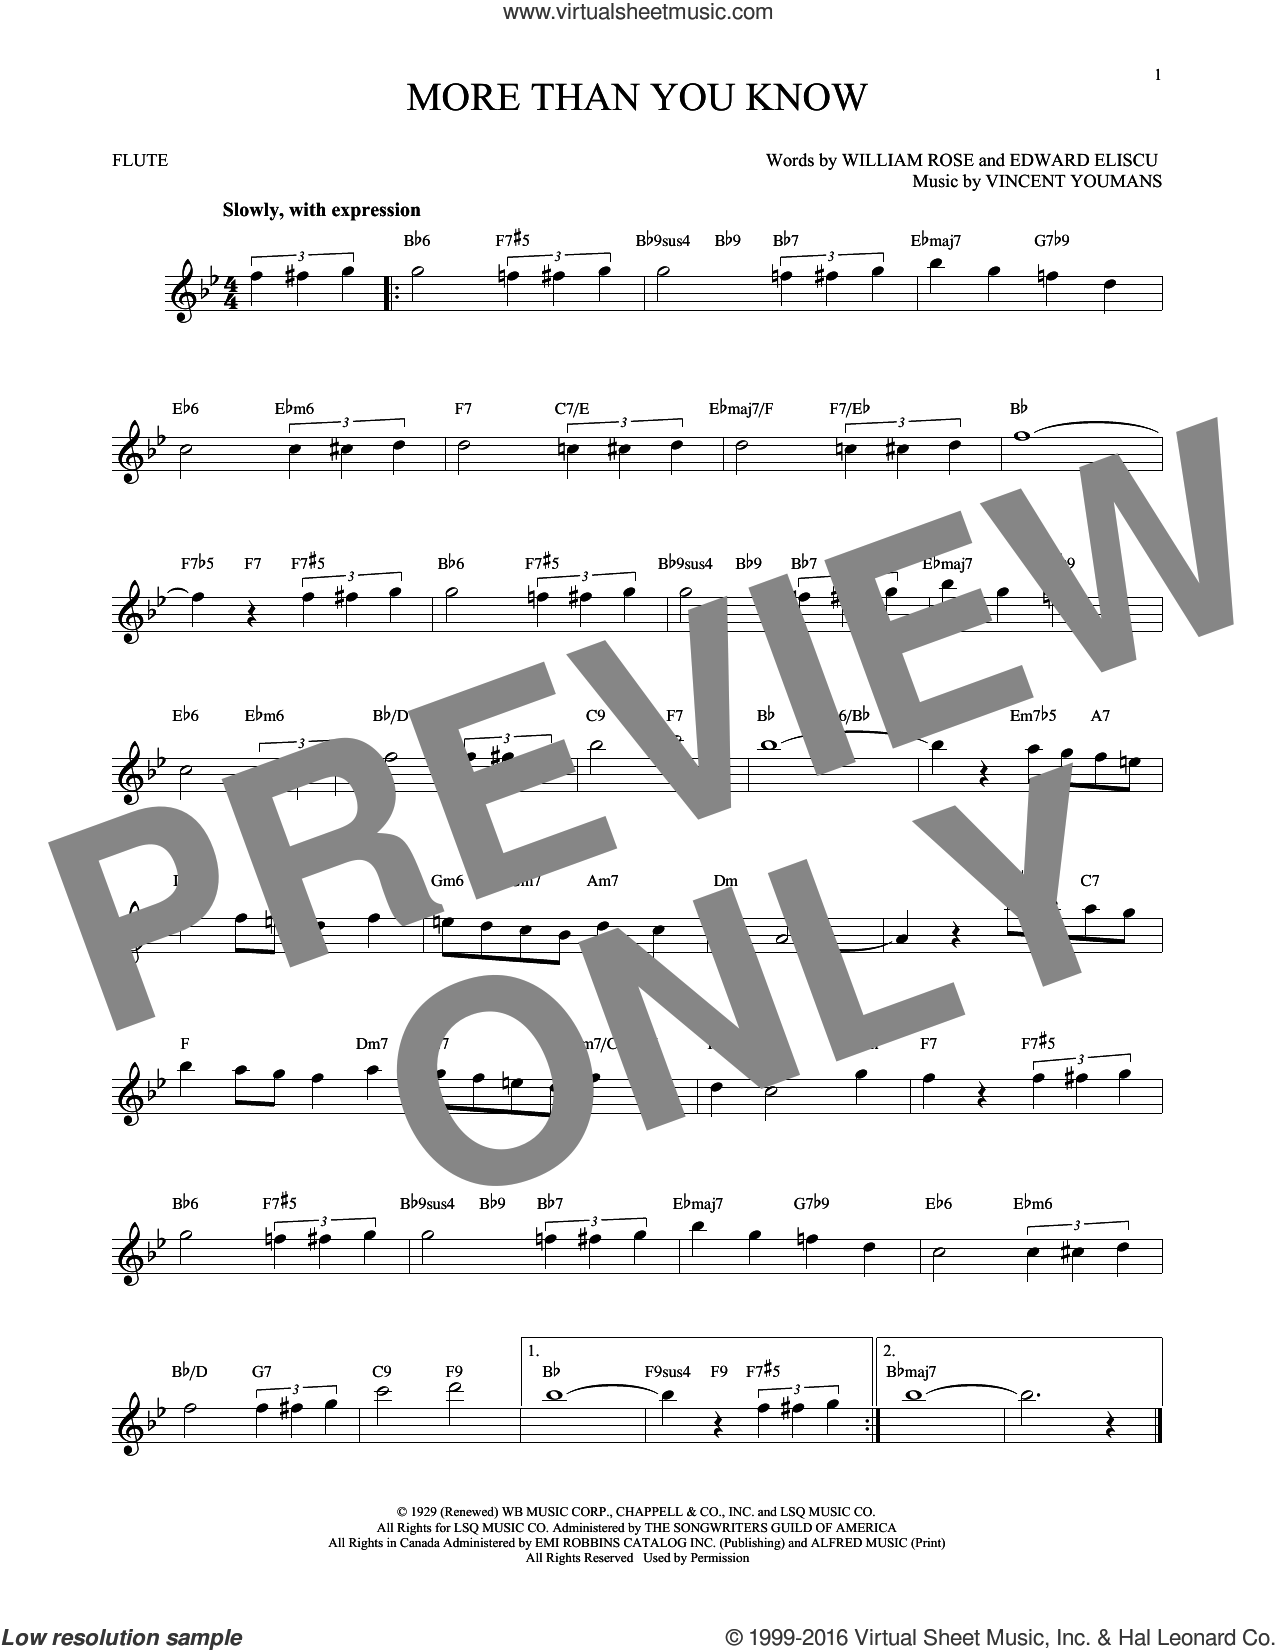 More Than You Know sheet music for flute solo by Vincent Youmans, Edward Eliscu and William Rose, intermediate skill level